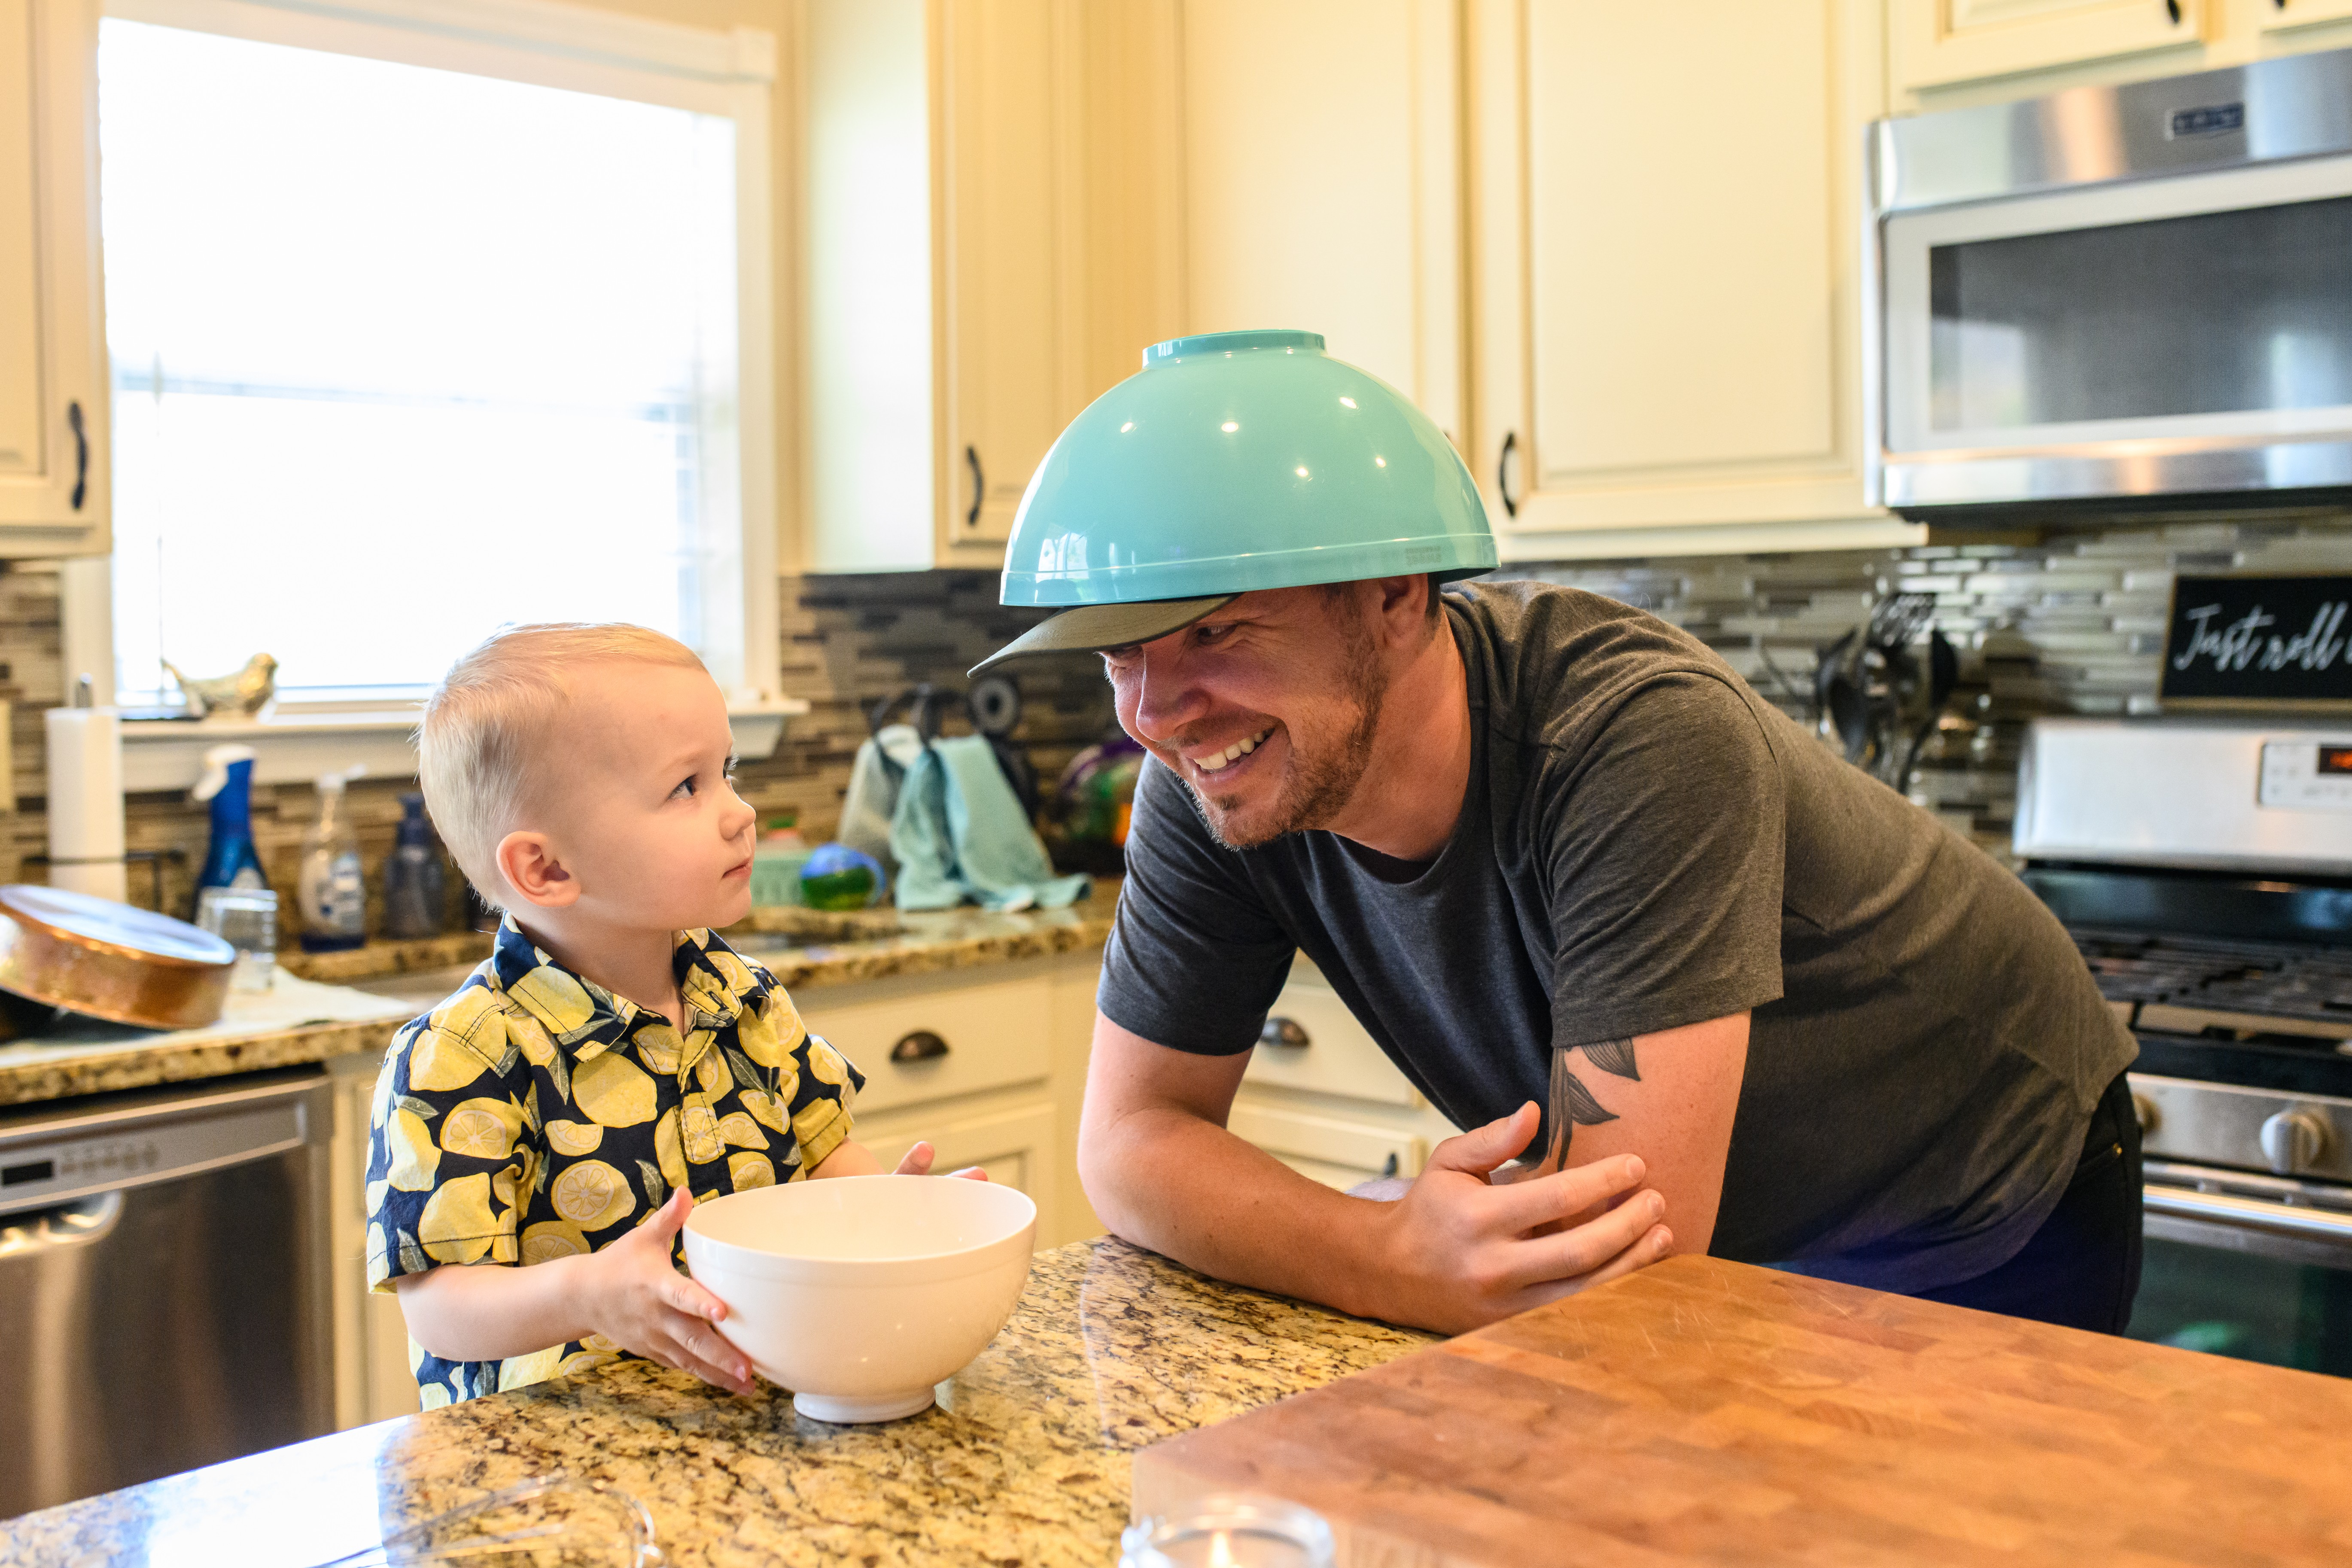 Beaming man leans over a kitchen counter with a bowl on atop of his head; he's smiling at a toddler who's looking up at him.